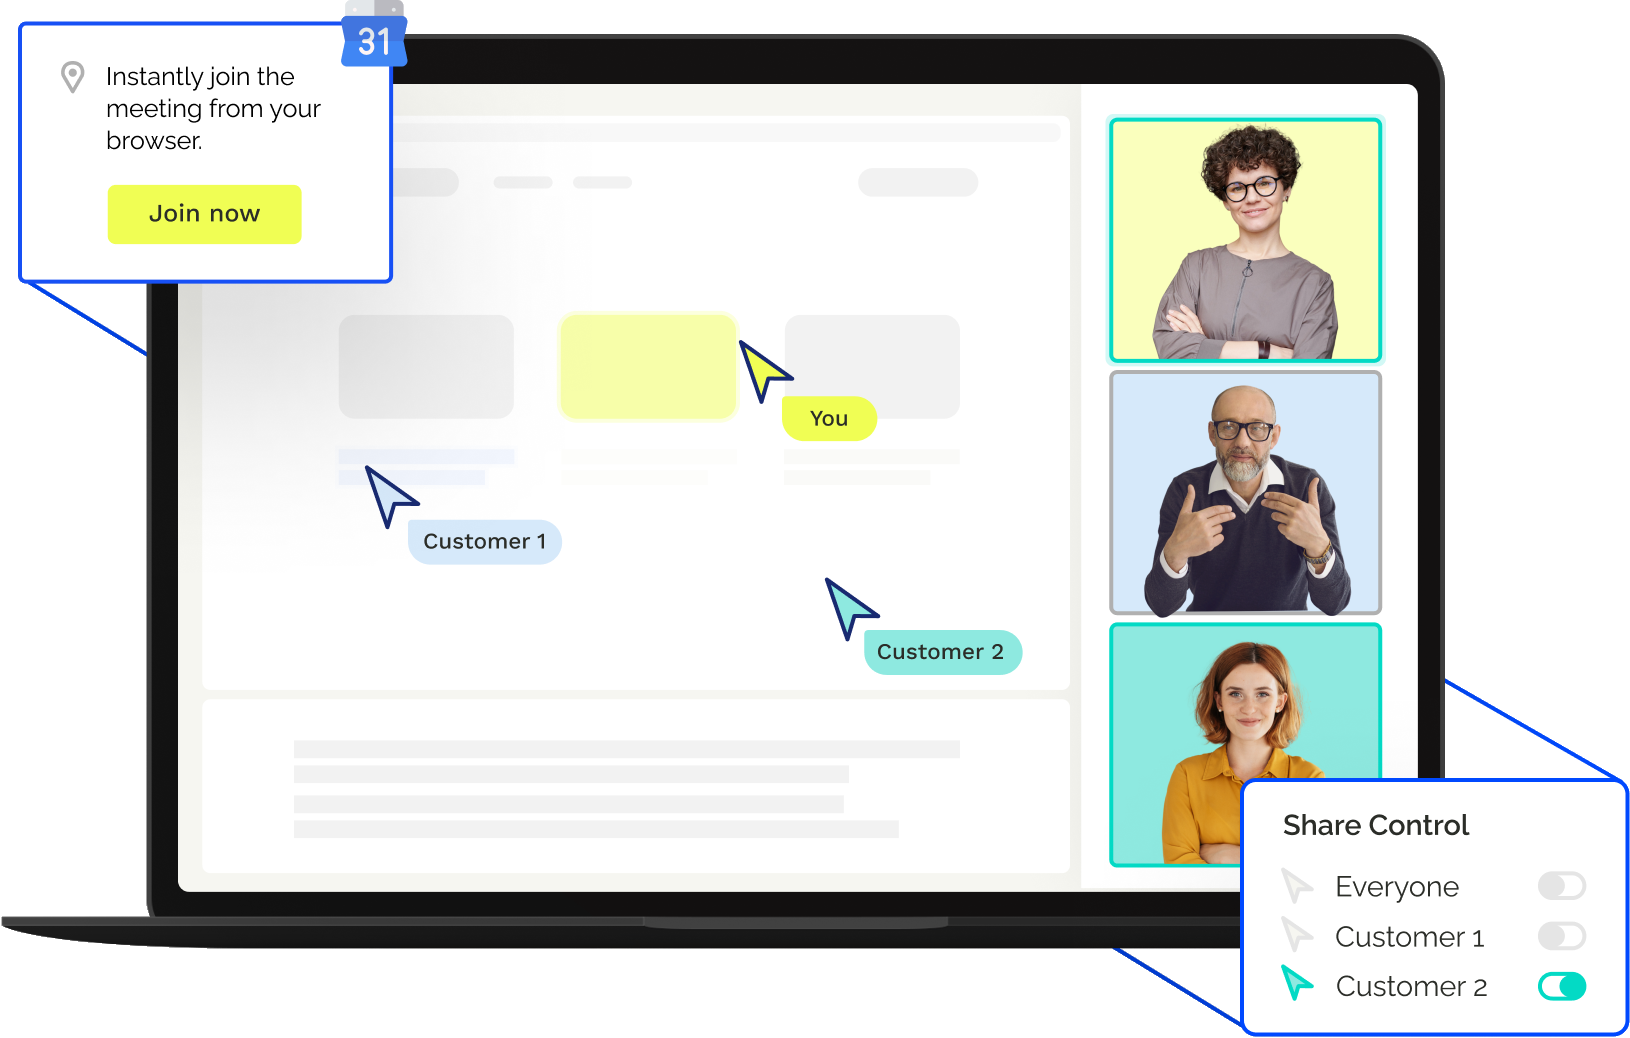 Join meetings instantly and interact in real-time with the same content as your customers – no pop-ups or downloads.